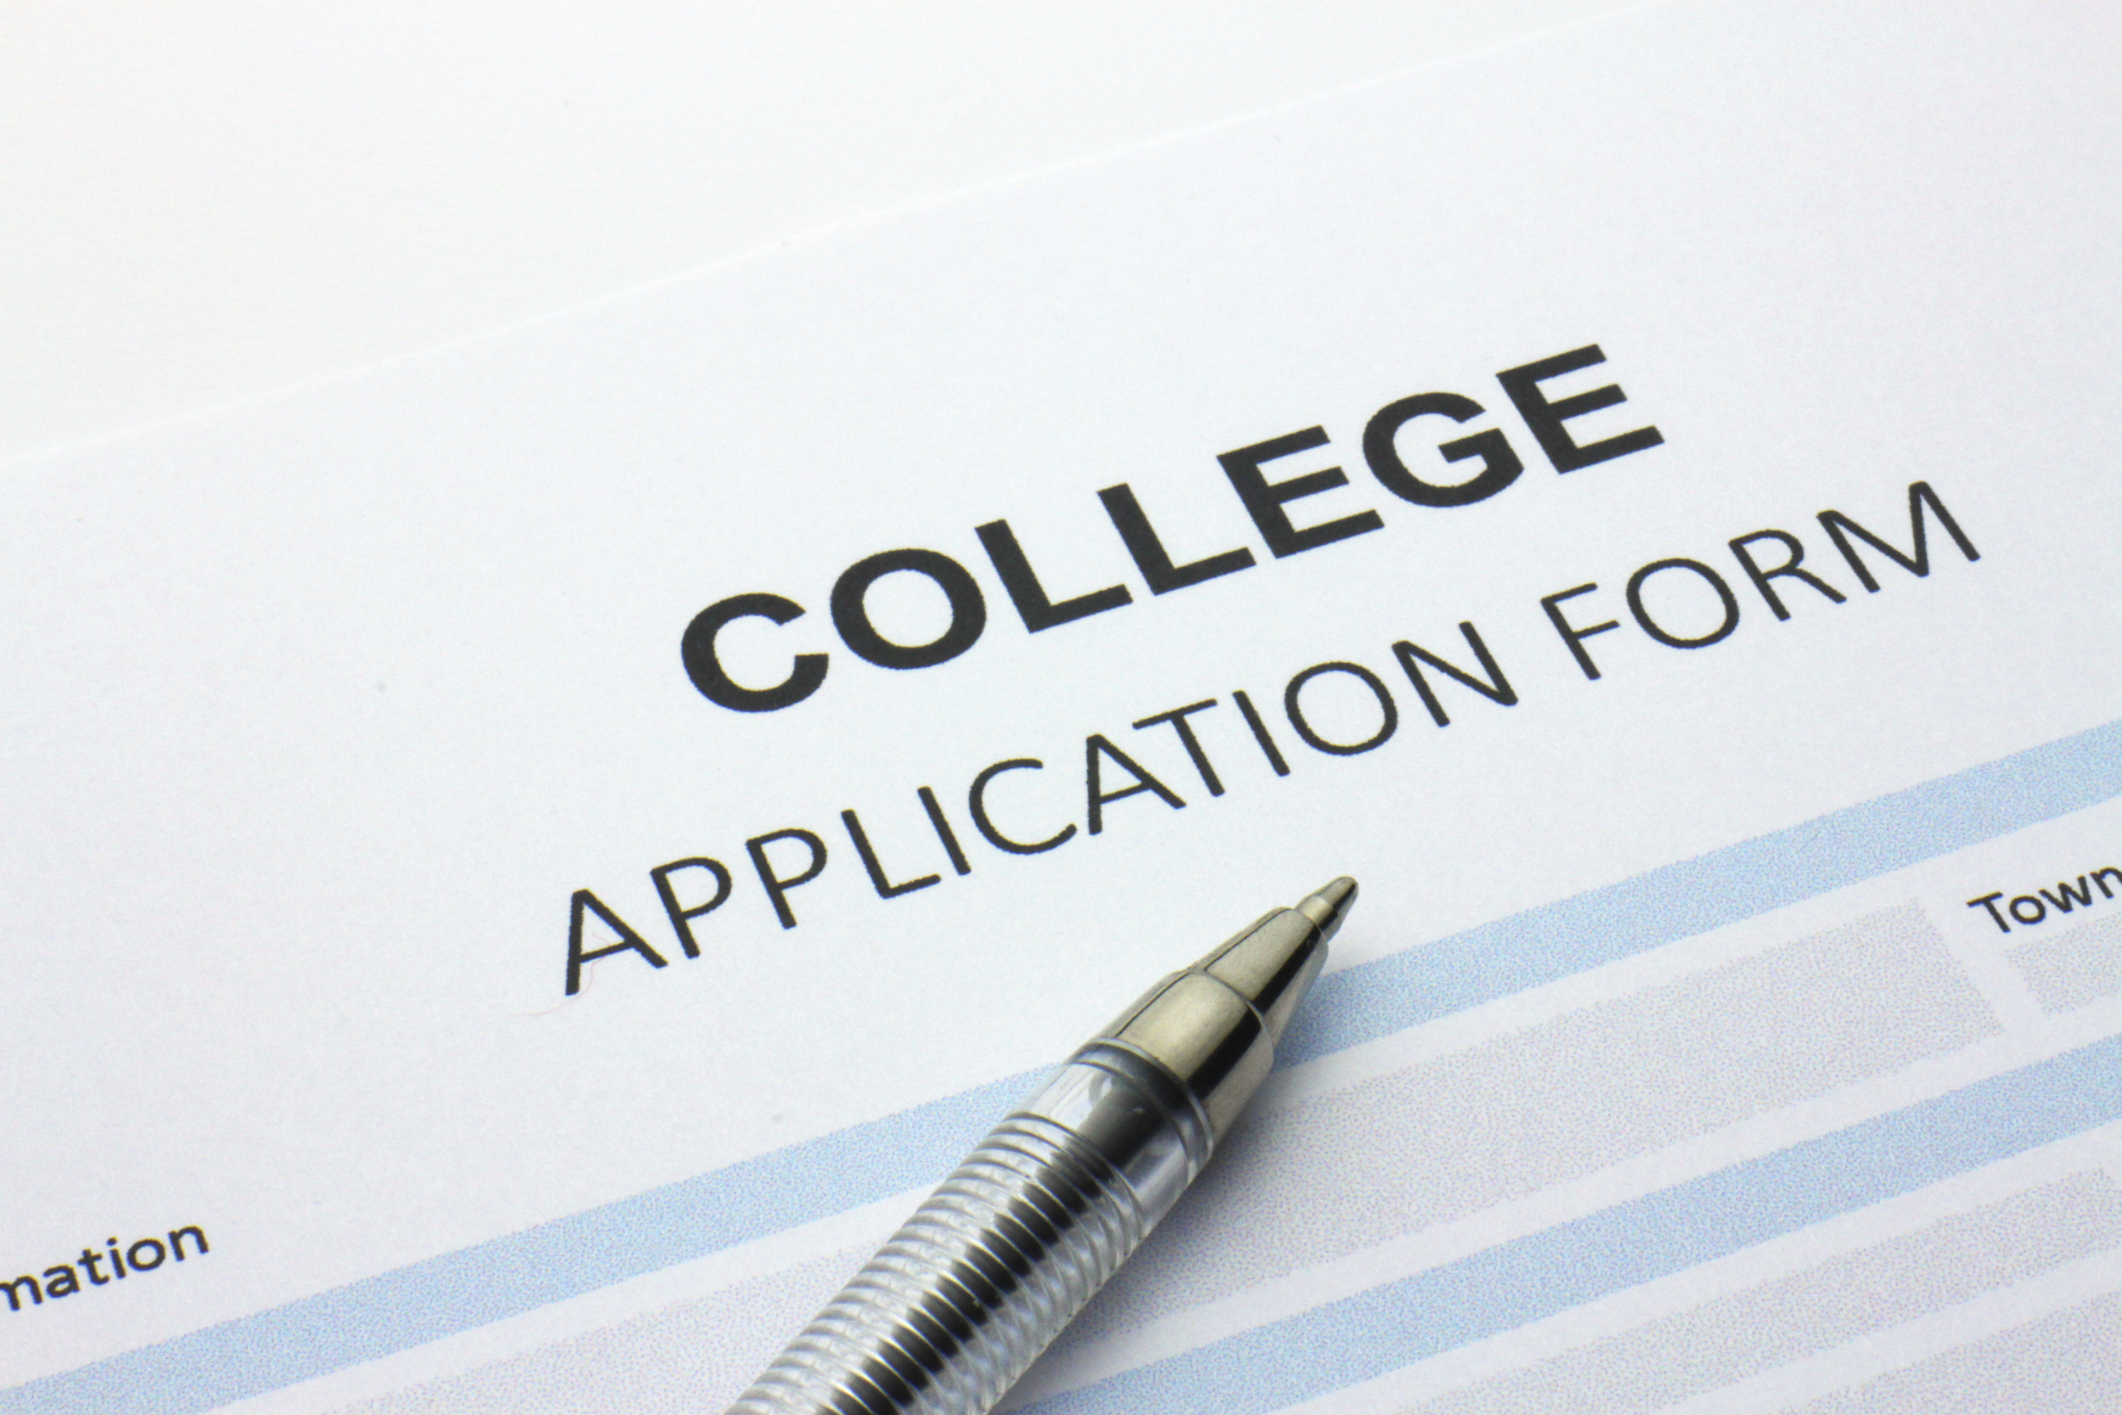 Advice with college applications? (Extenuating circumstances)?